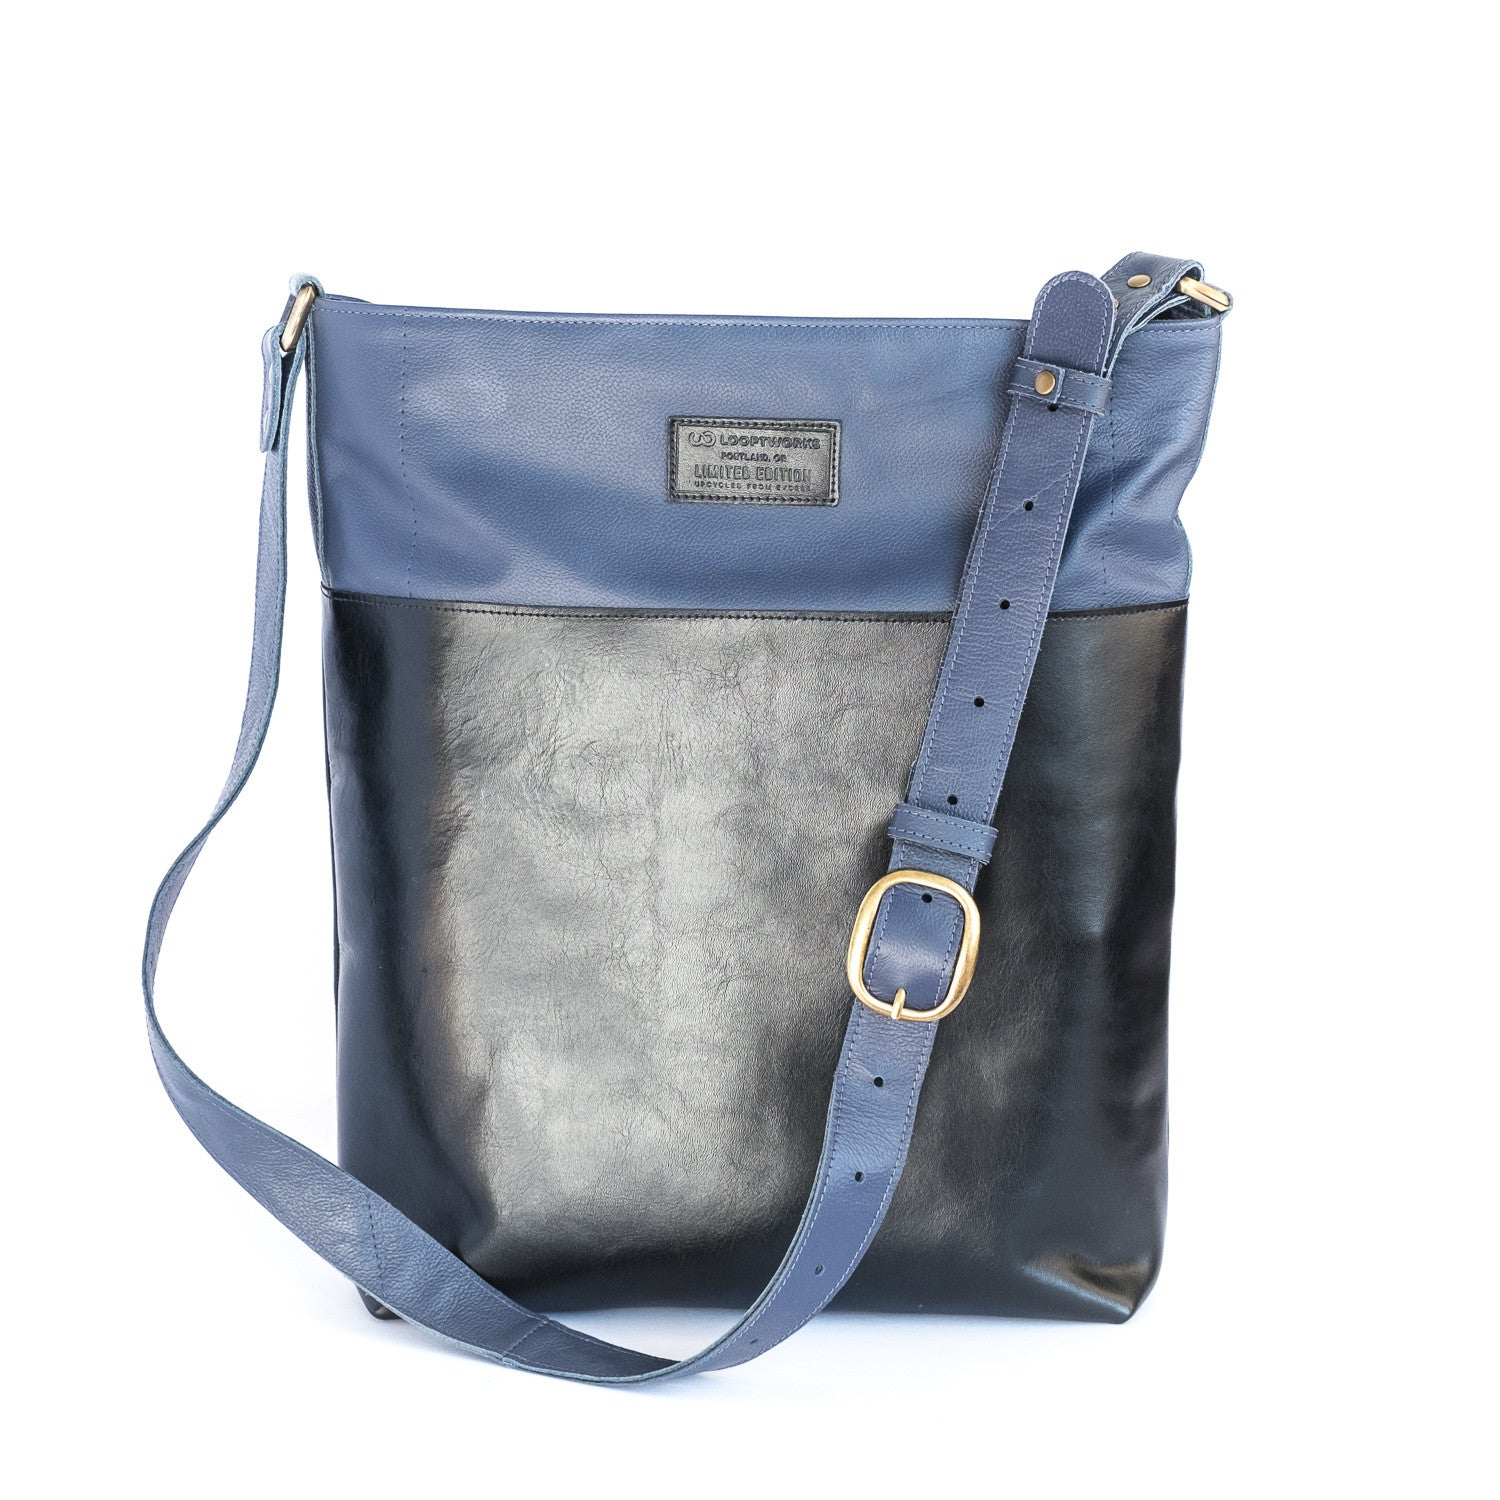 In Flight LUV Seat Caliana Laptop Crossbody Shoulder Bags - Looptworks